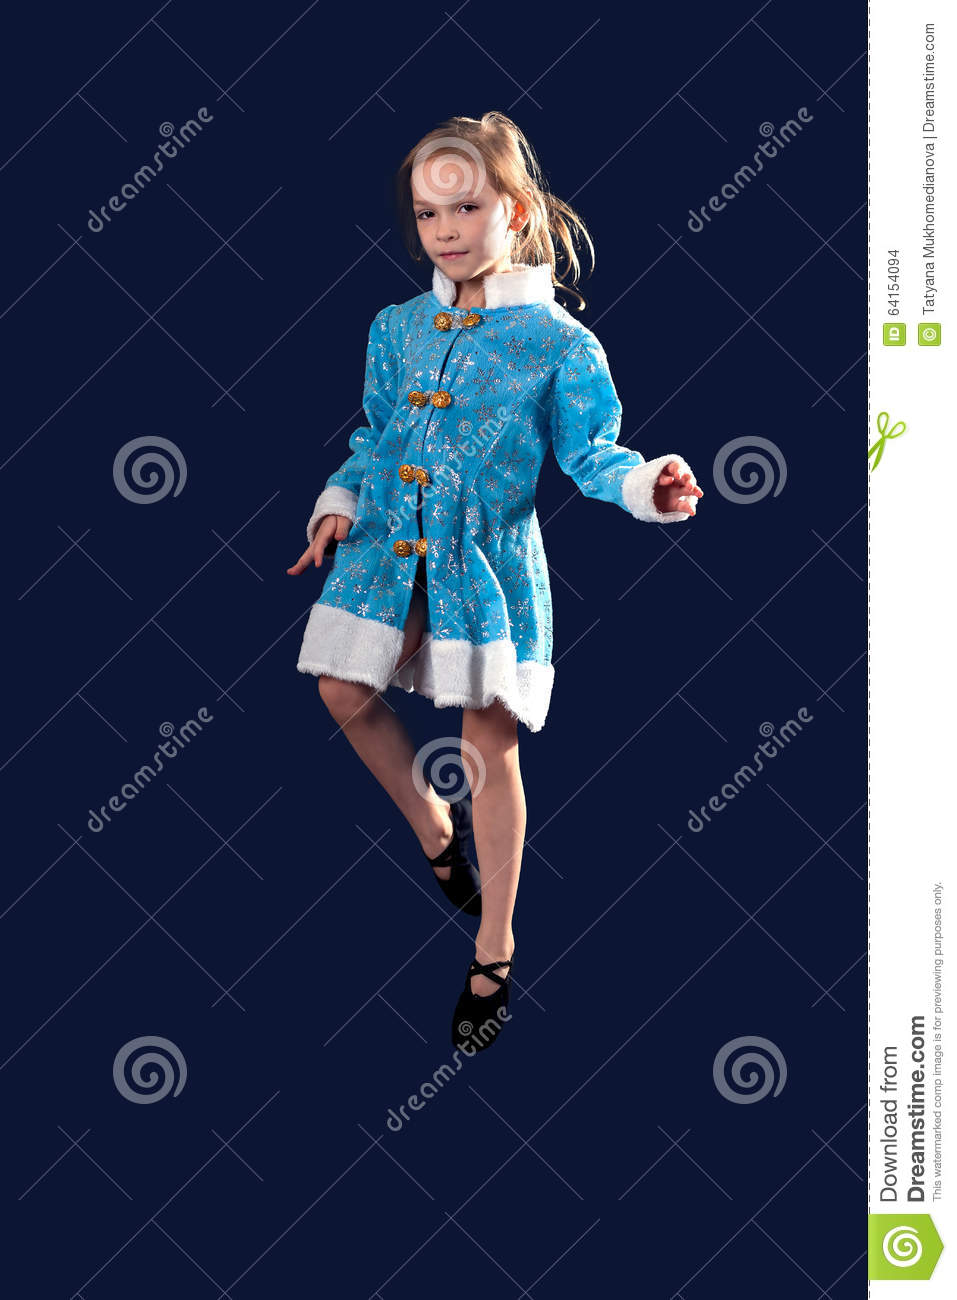 51d5e301 Little Girl Jumping In The Air In The Blue Dress. Stock Photo ...